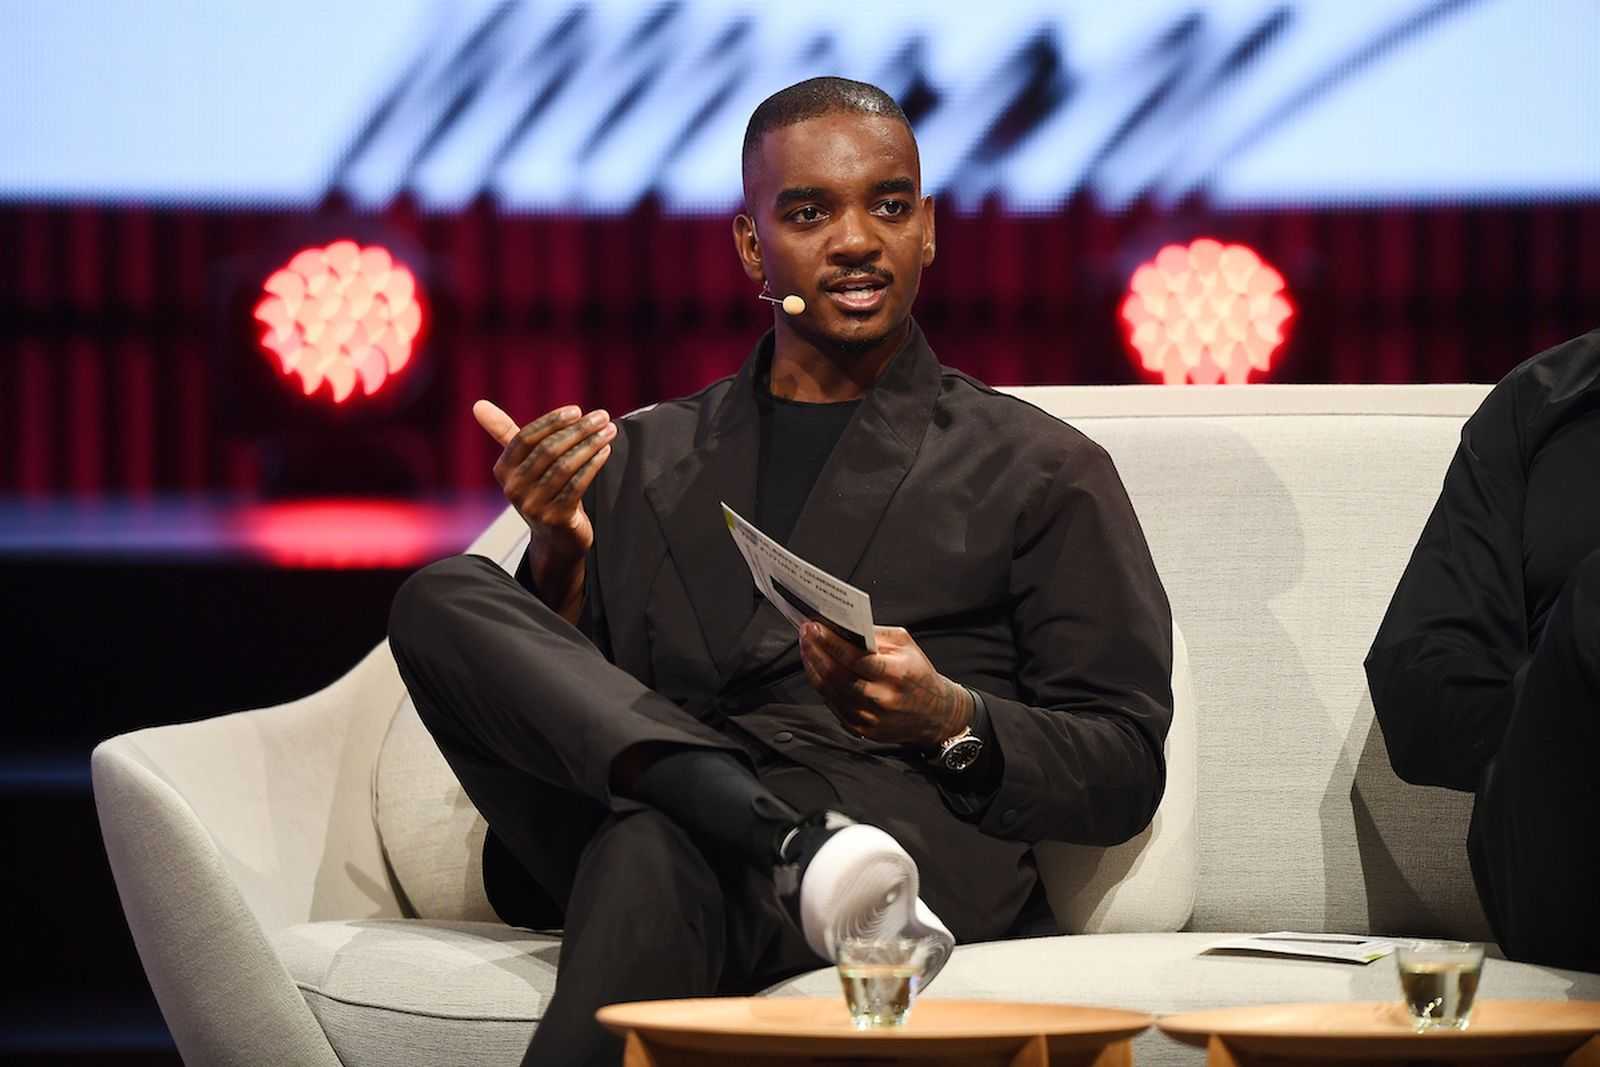 COPENHAGEN, DENMARK - MAY 16: Samuel Ross, Founder and Designer, A-Cold-Wall,  takes part in the 'sustainability and design decisions: good, bad or ugly?' Panel Discussion during Day Two of the Copenhagen Fashion Summit 2019 at DR Koncerthuset on May 16, 2019 in Copenhagen, Denmark. Since its first edition in 2009, Copenhagen Fashion Summit has established itself as the world's leading business event on sustainability in fashion. Convening major fashion industry decision makers on a global scale, the Summit has become the nexus for agenda-setting discussions on the most critical environmental, social and ethical issues facing our industry and planet. Marking its 10th anniversary, the next edition of Copenhagen Fashion Summit takes place on 15-16 May 2019 at the Copenhagen Concert Hall under the patronage of HRH The Crown Princess of Denmark. The Summit is organised by Global Fashion Agenda, a non-profit leadership forum on fashion sustainability that works to mobilise the global fashion system to change the way we produce, market and consume fashion, for a world beyond next season. (Photo by Lars Ronbog/Getty Images for Copenhagen Fashion Summit)